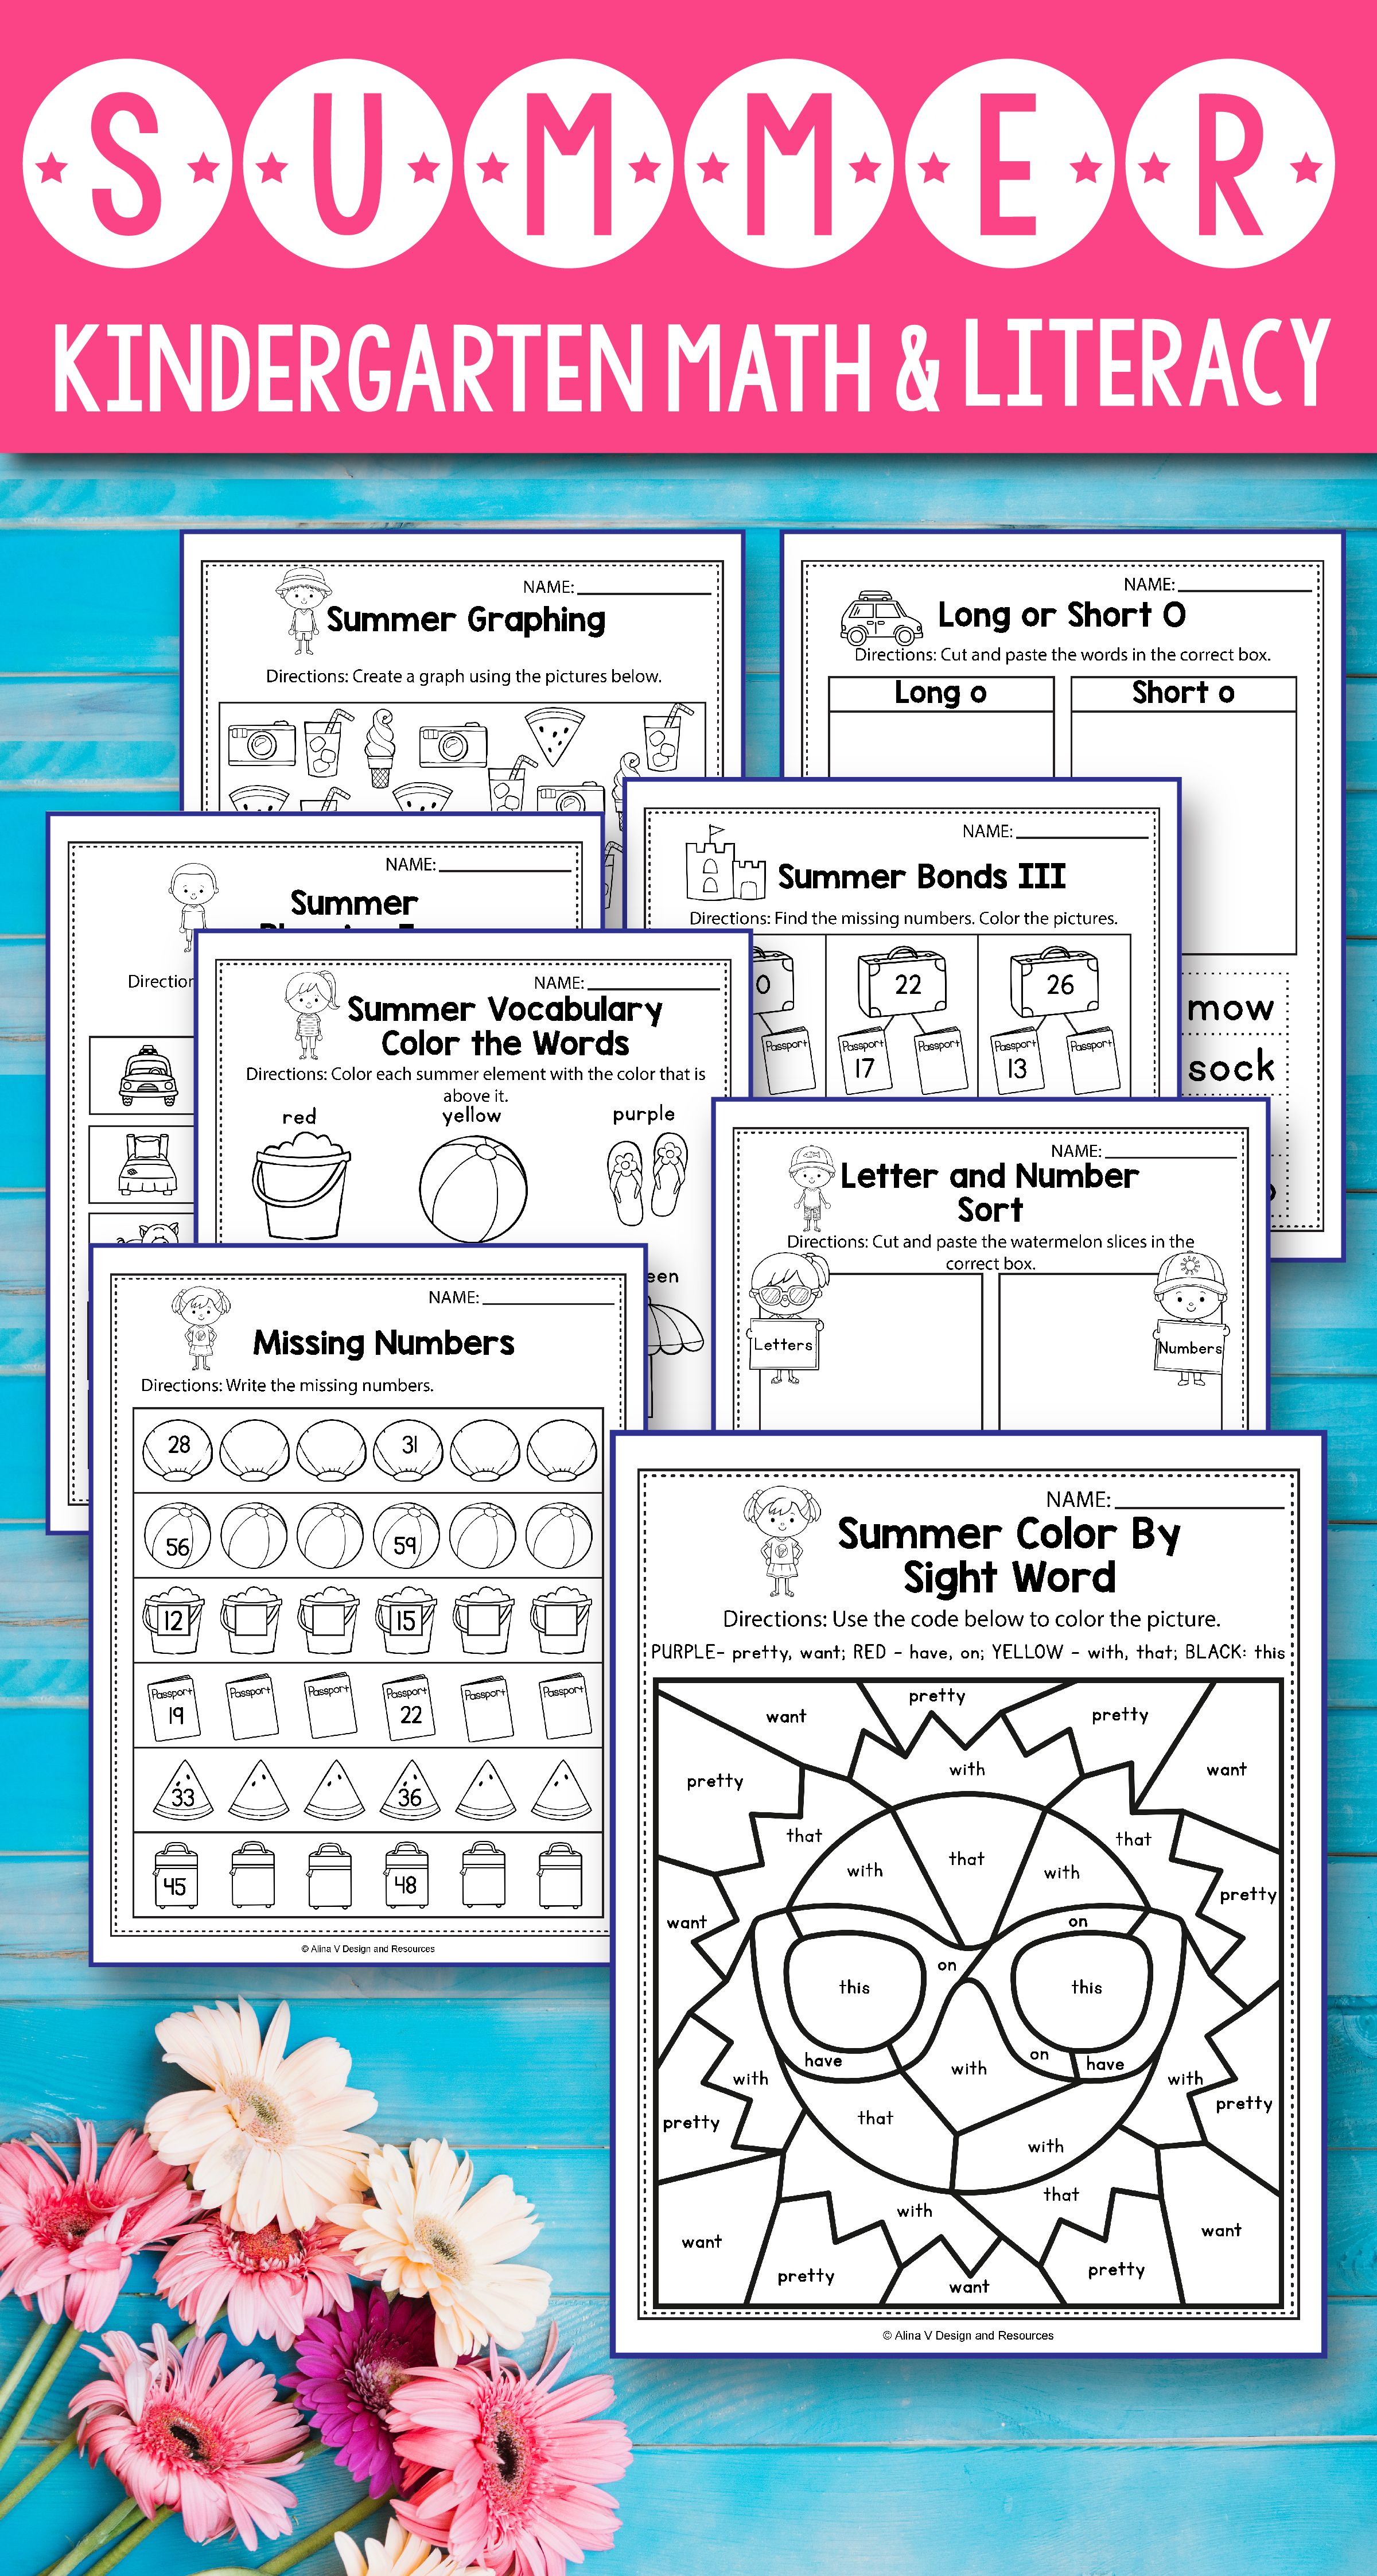 Summer Review Math And Literacy Activities For Preschool